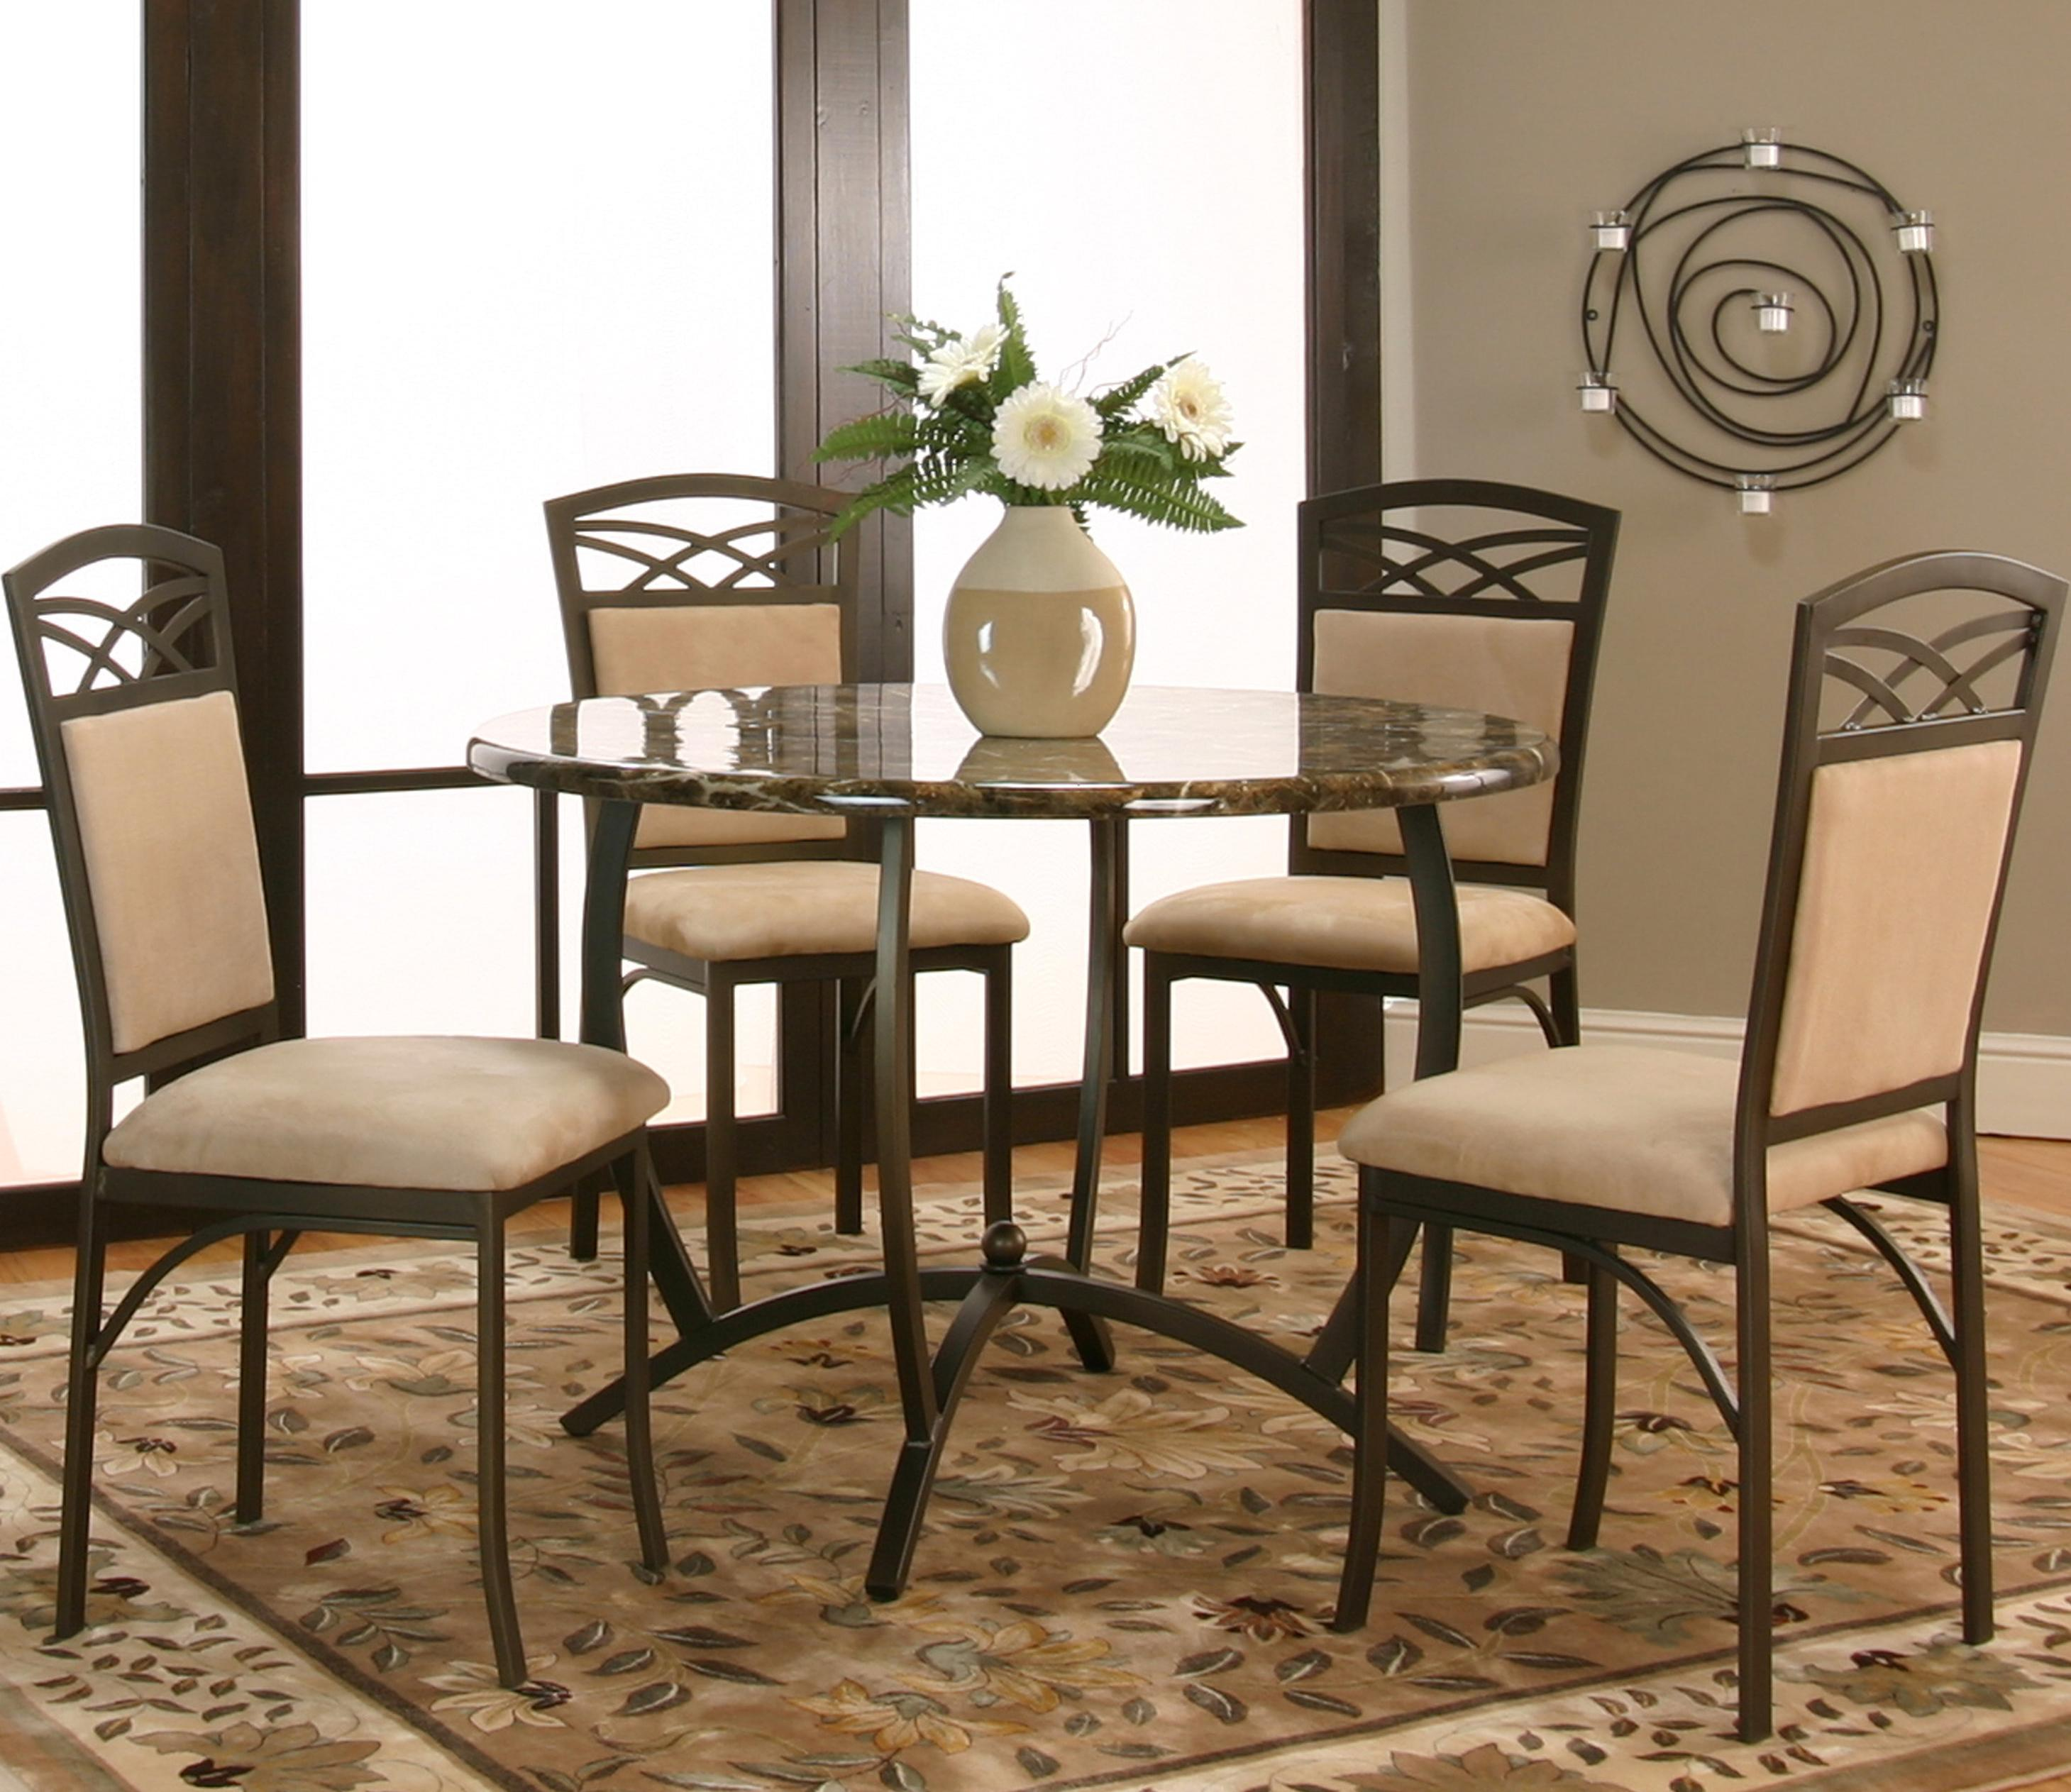 Cramco Inc Atlas 5 Piece Dining Set - Item Number 72019-54+ : set your table lakewood nj - pezcame.com